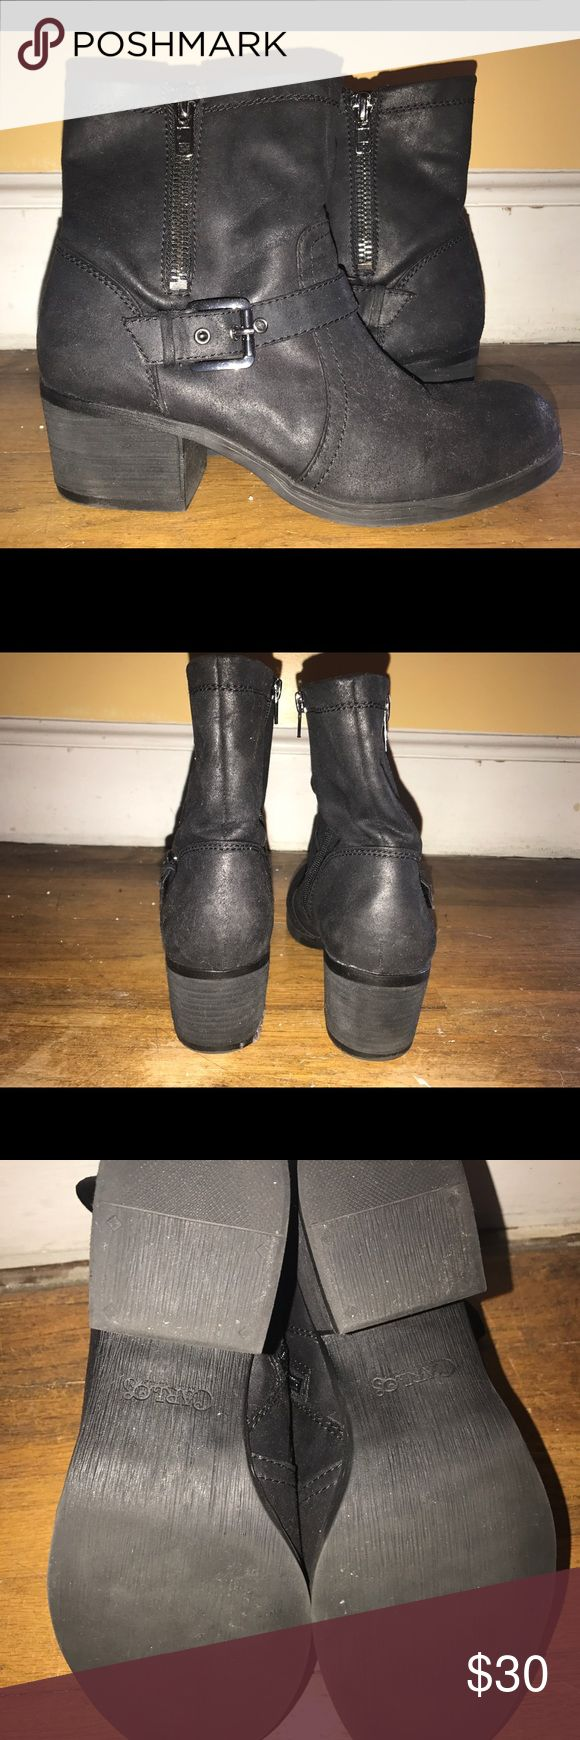 Carlos Santana Rolla Boot size 11 Carlos Santana Rolla boot size 11. Like new, worn 3 times. Suede outter Moto boot. Carlos Santana Shoes Combat & Moto Boots